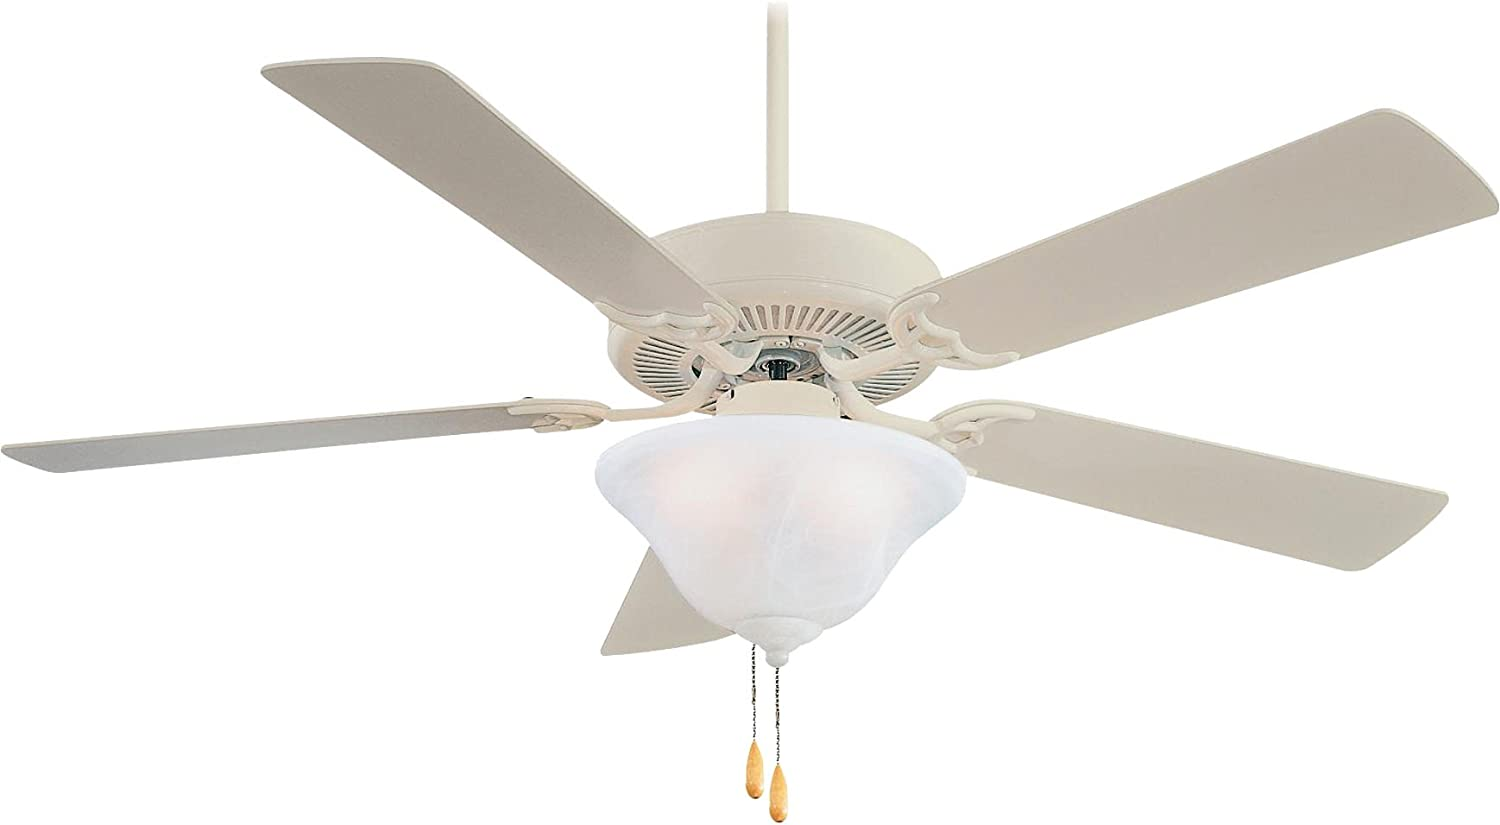 Minka-Aire F548-BS, Contractor Uni-Pack, 52' Ceiling Fan, Brushed Steel